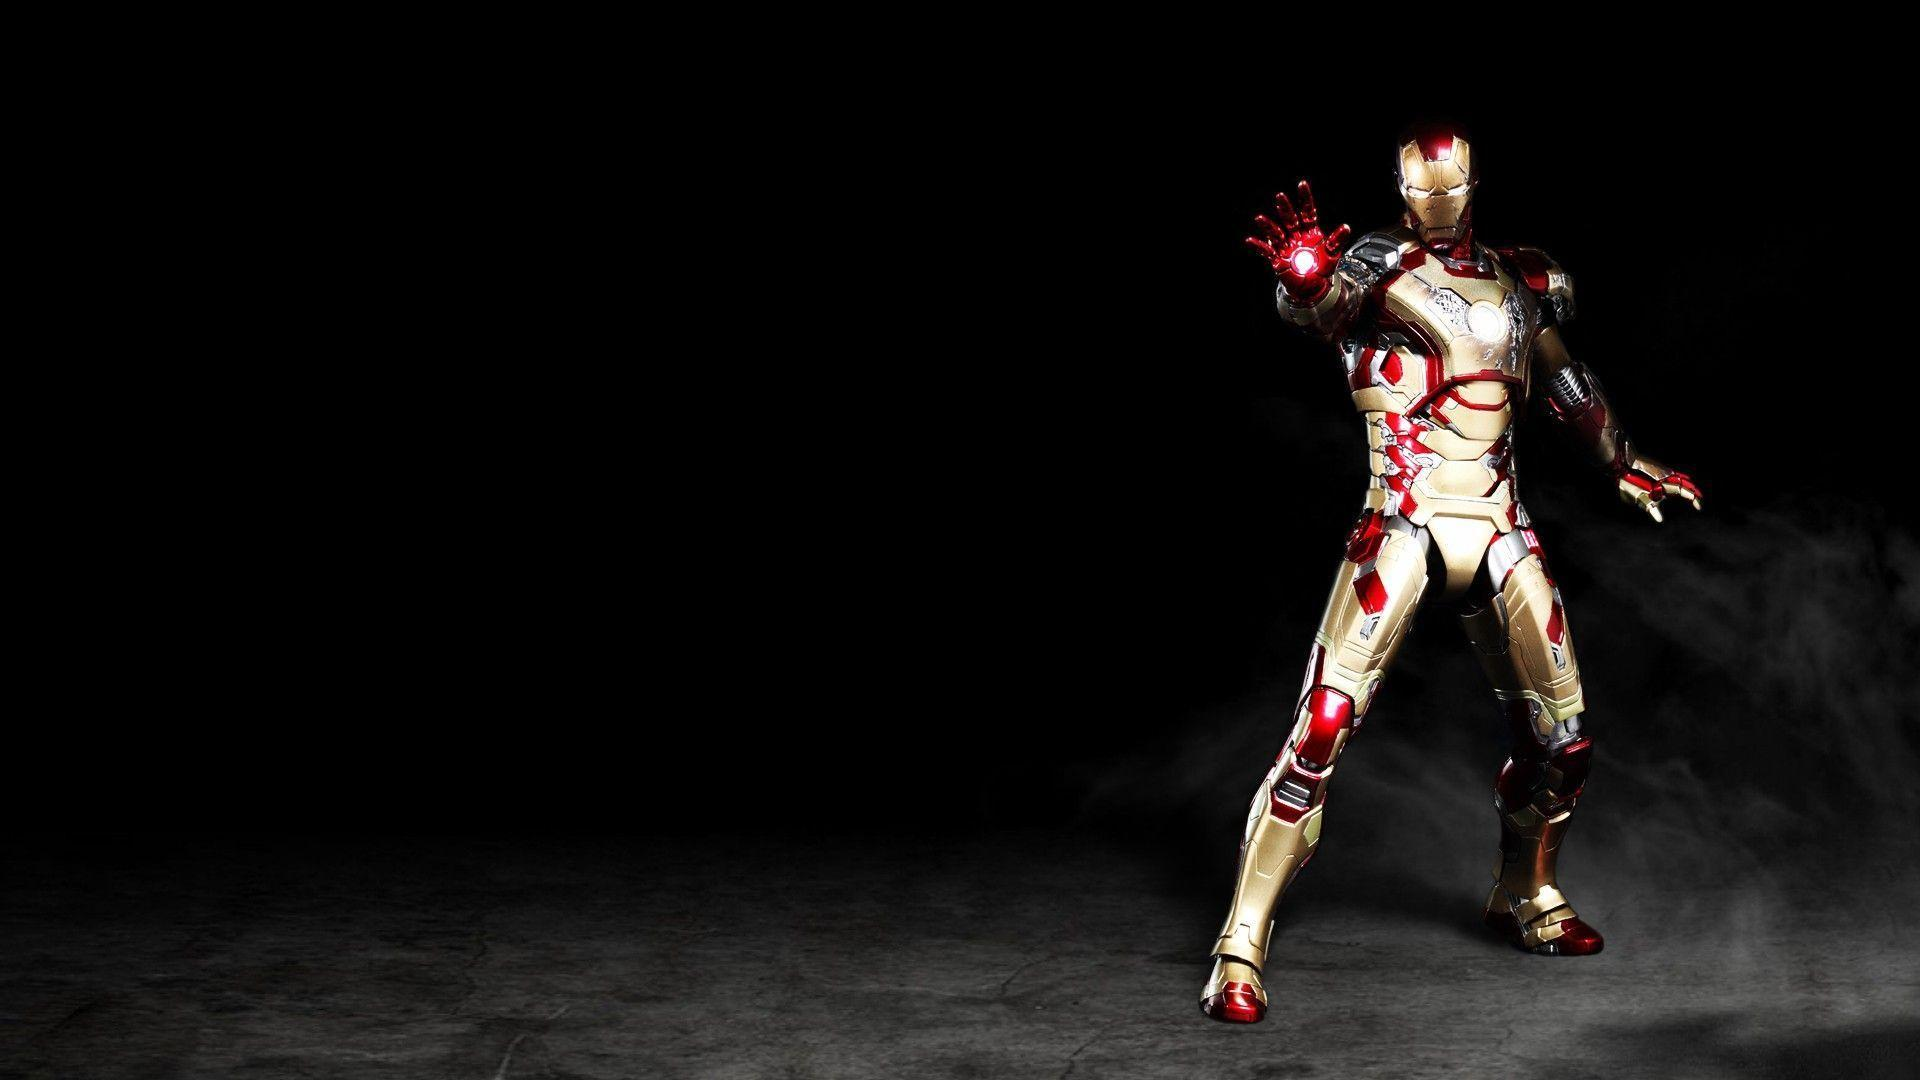 Iron Man Suit Hd Wallpapers Wallpapers